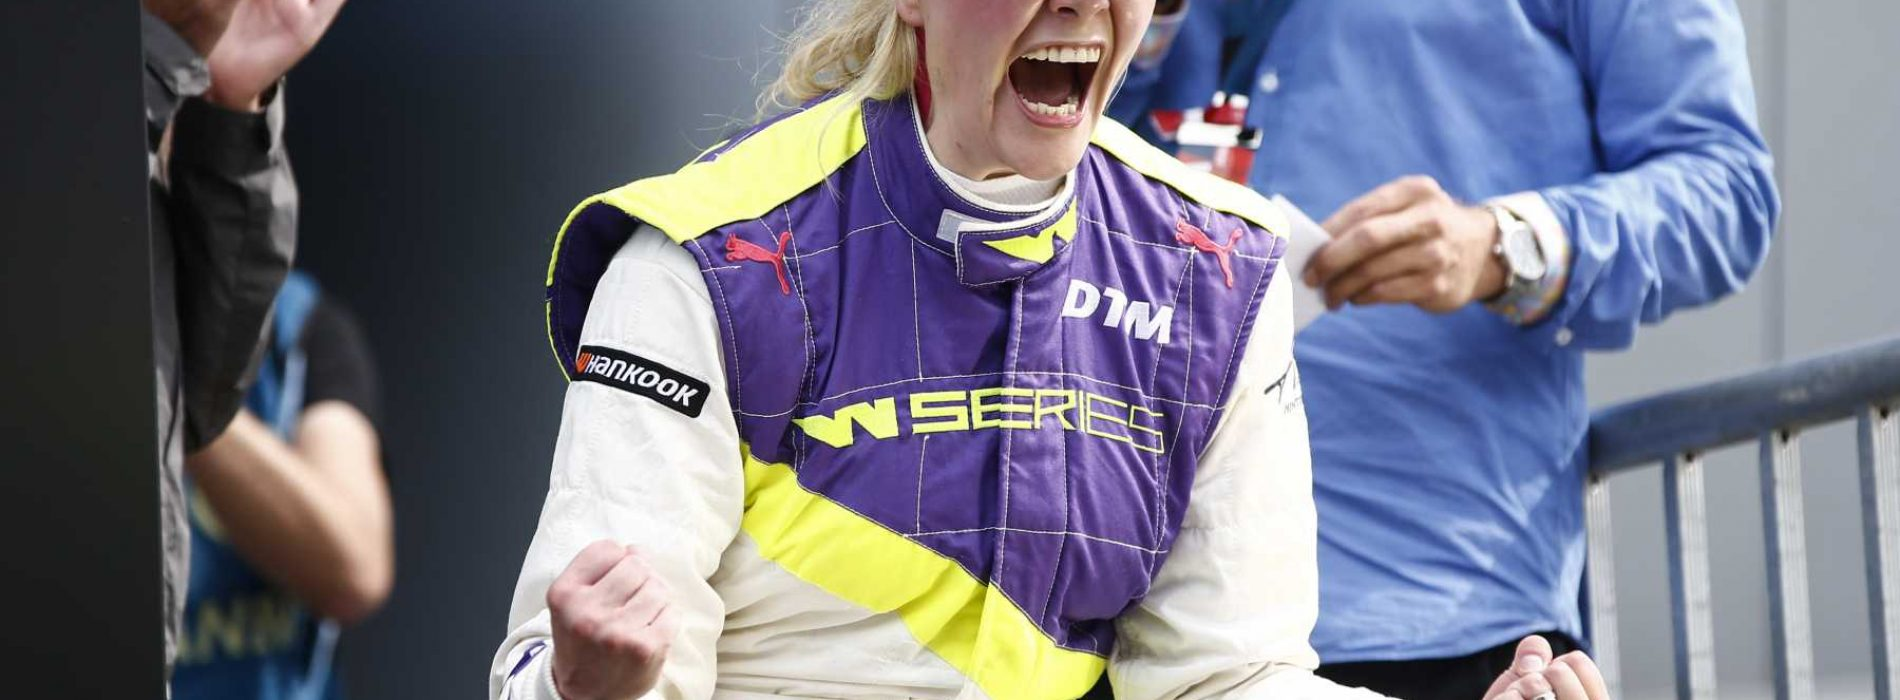 Emma Kimilainen wins WSeries Race 5- remarkable achievement given out for Race 2 and 3 due to injury in Race 1